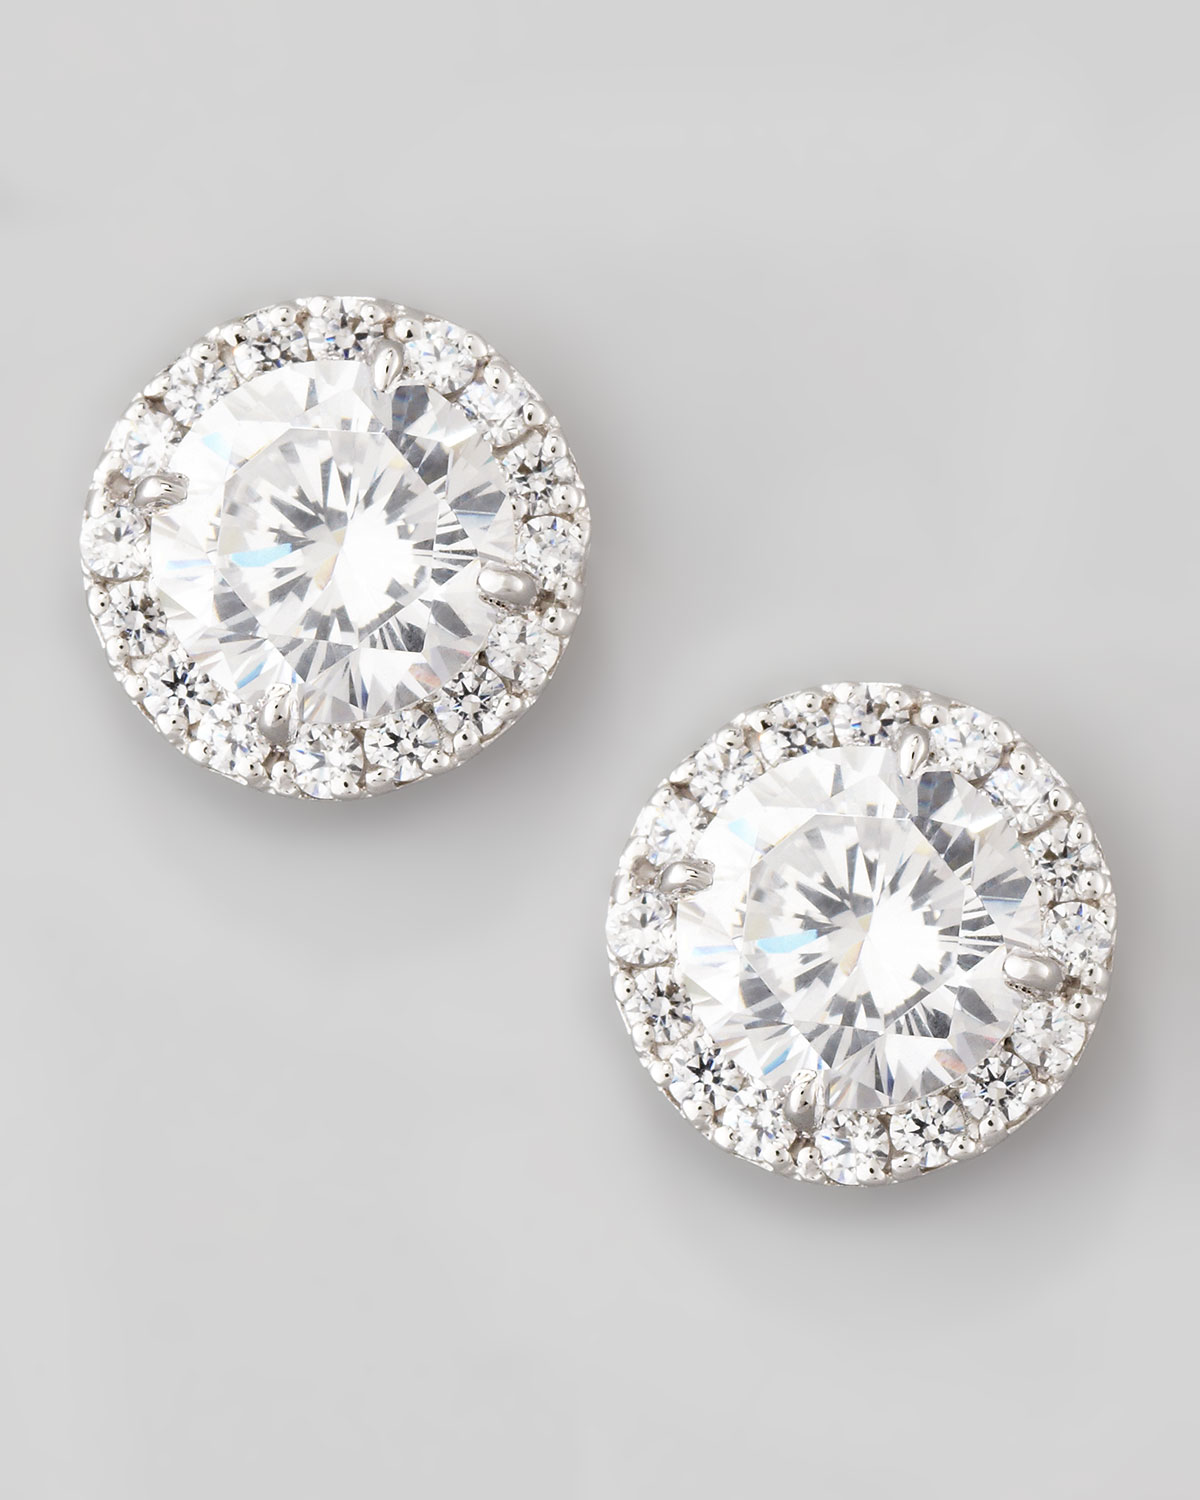 Fantasia Flower CZ Crystal Stud Earrings J70XBJcD